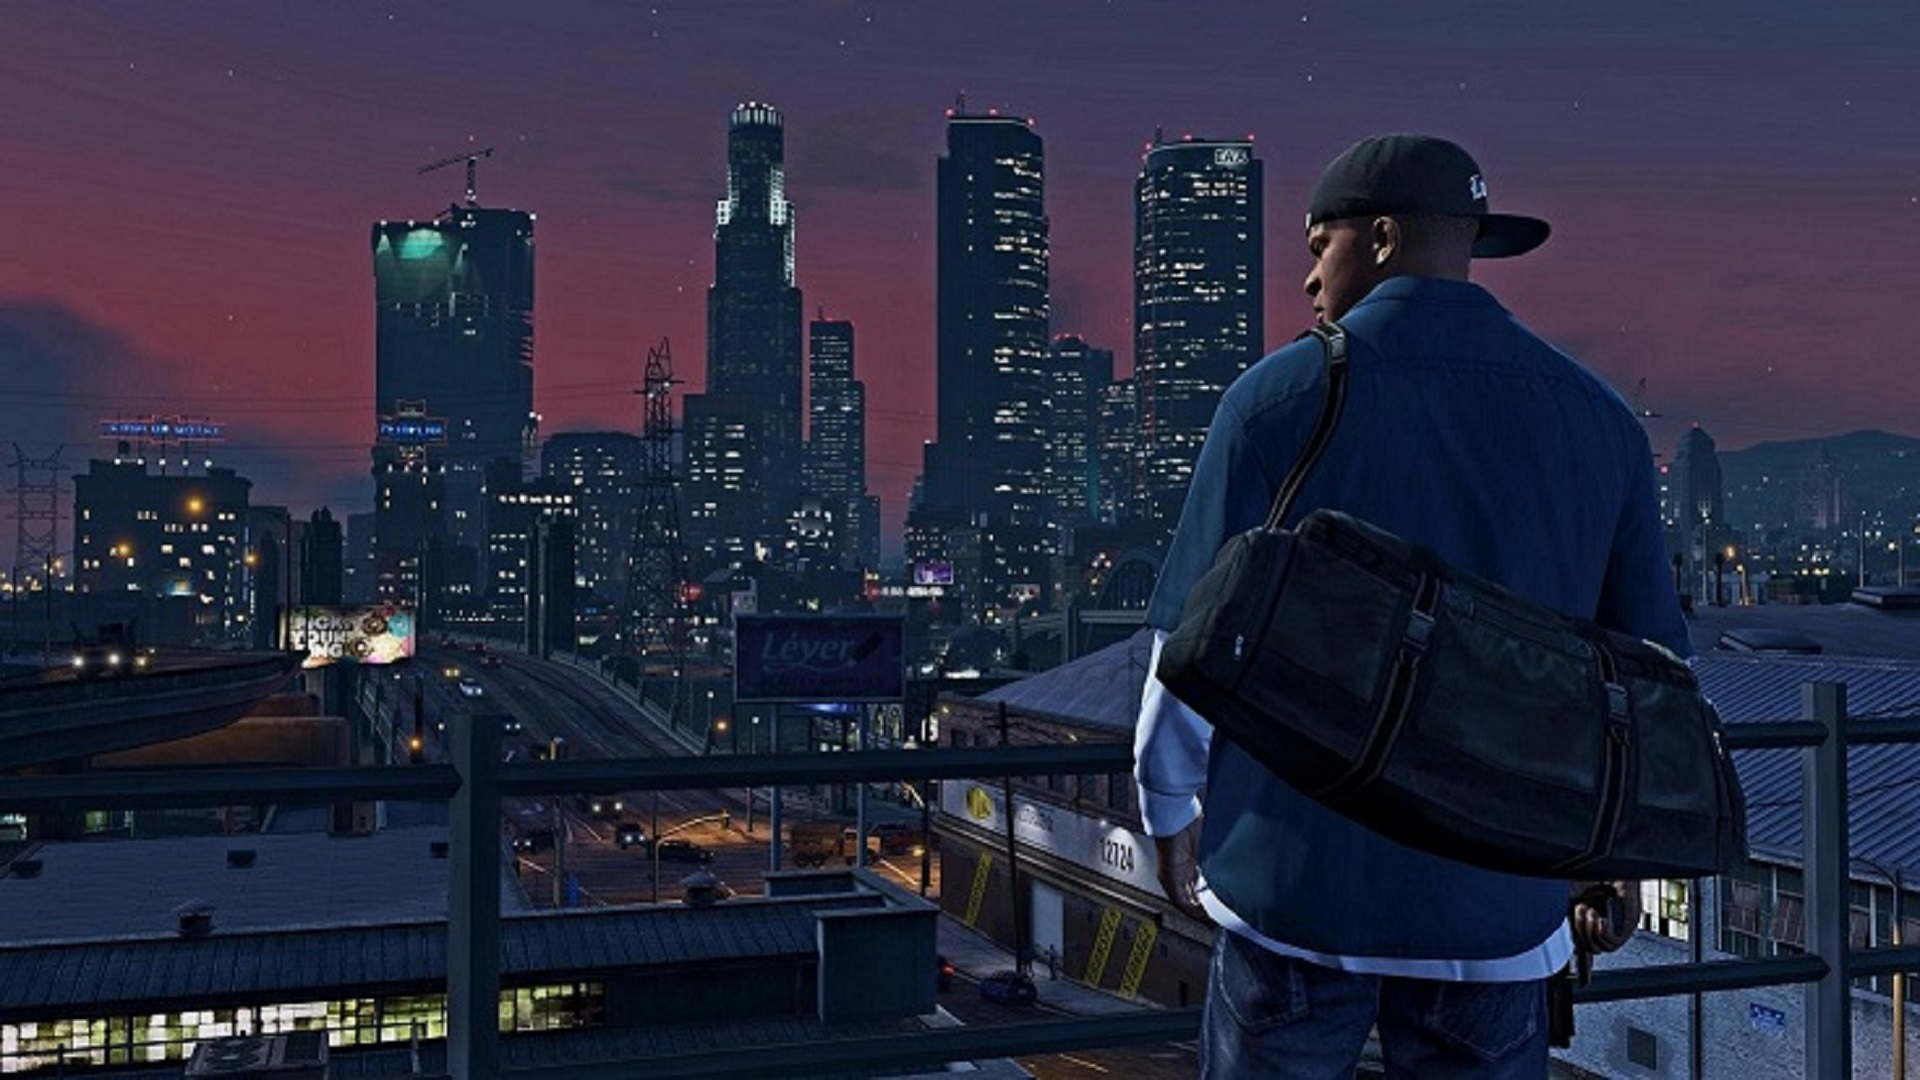 Grand-theft-auto-planning-to-become-a-king-of-the-city-1920-X-1080-Need-iPhone-S-Plus-Wallp-wallpaper-wp3406362